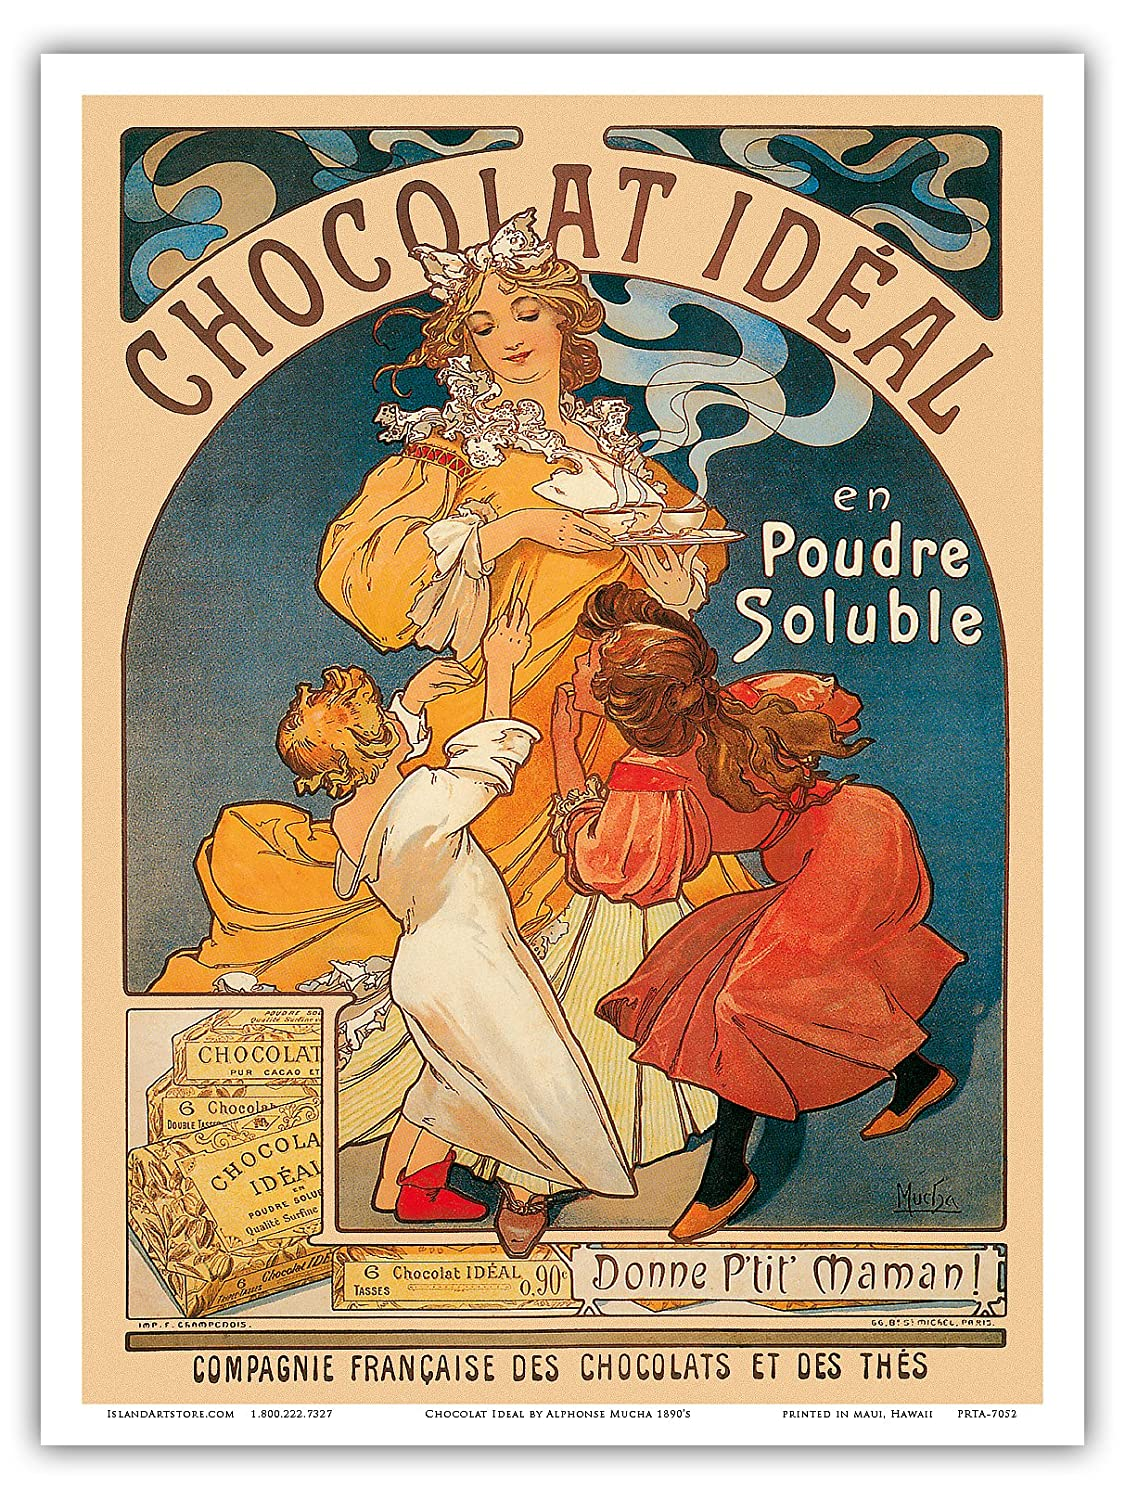 Pacifica Island Art Vintage Advertising Poster Alphonse Mucha c.1890/'s Chocolat Ideal Cocoa Cacao 9in x 12in Inc. Master Art Print